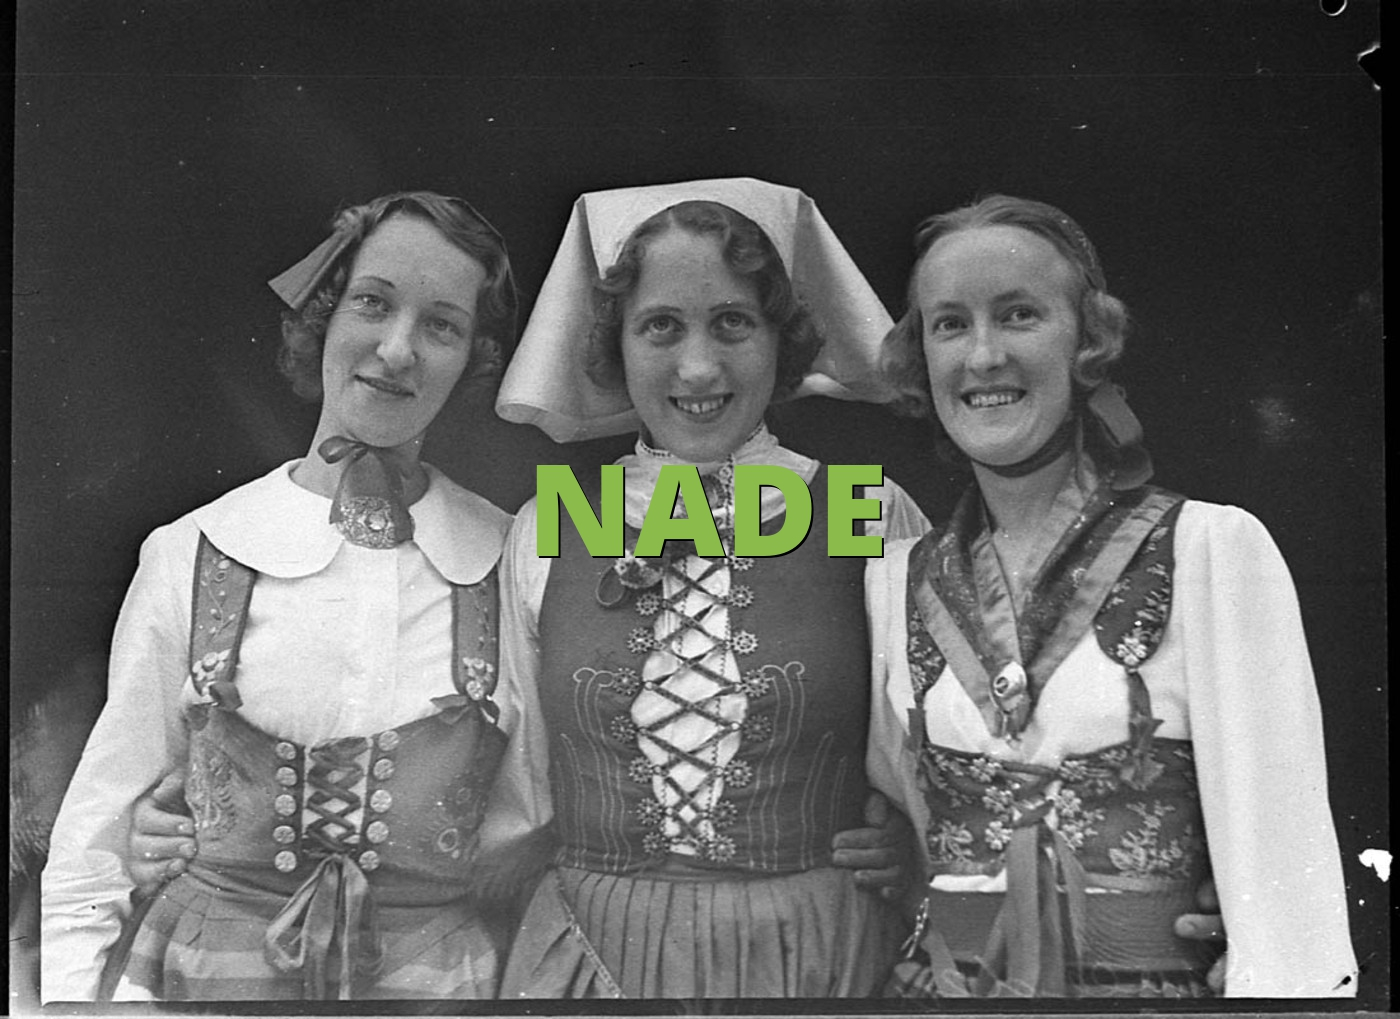 Nade Meaning